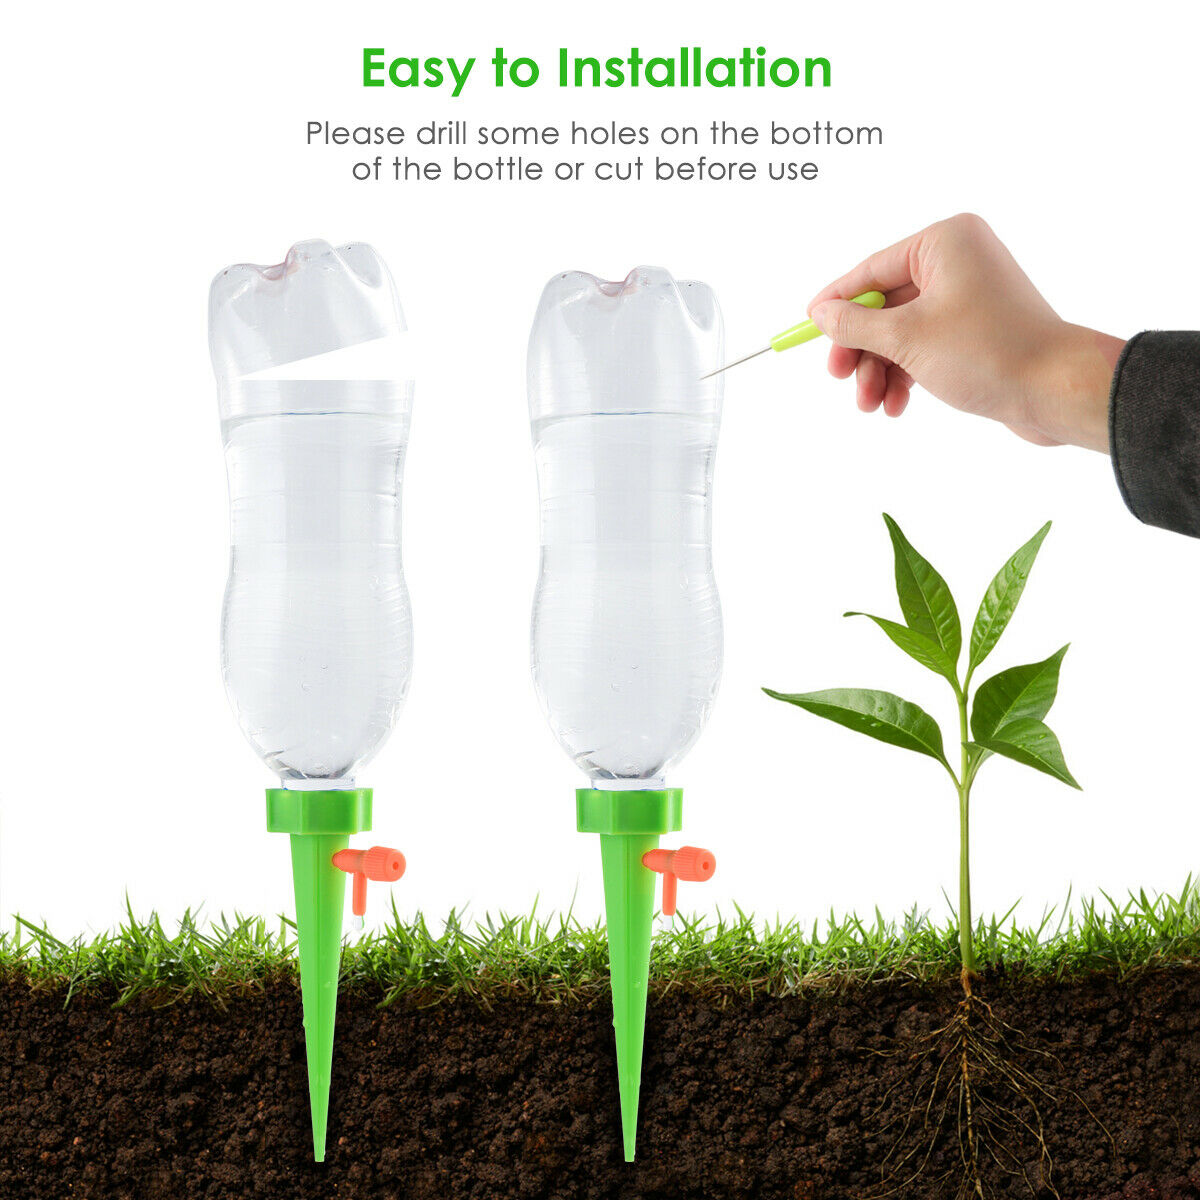 12X Garden Plant Self Watering Spike Irrigation watering with Slow Release Valve